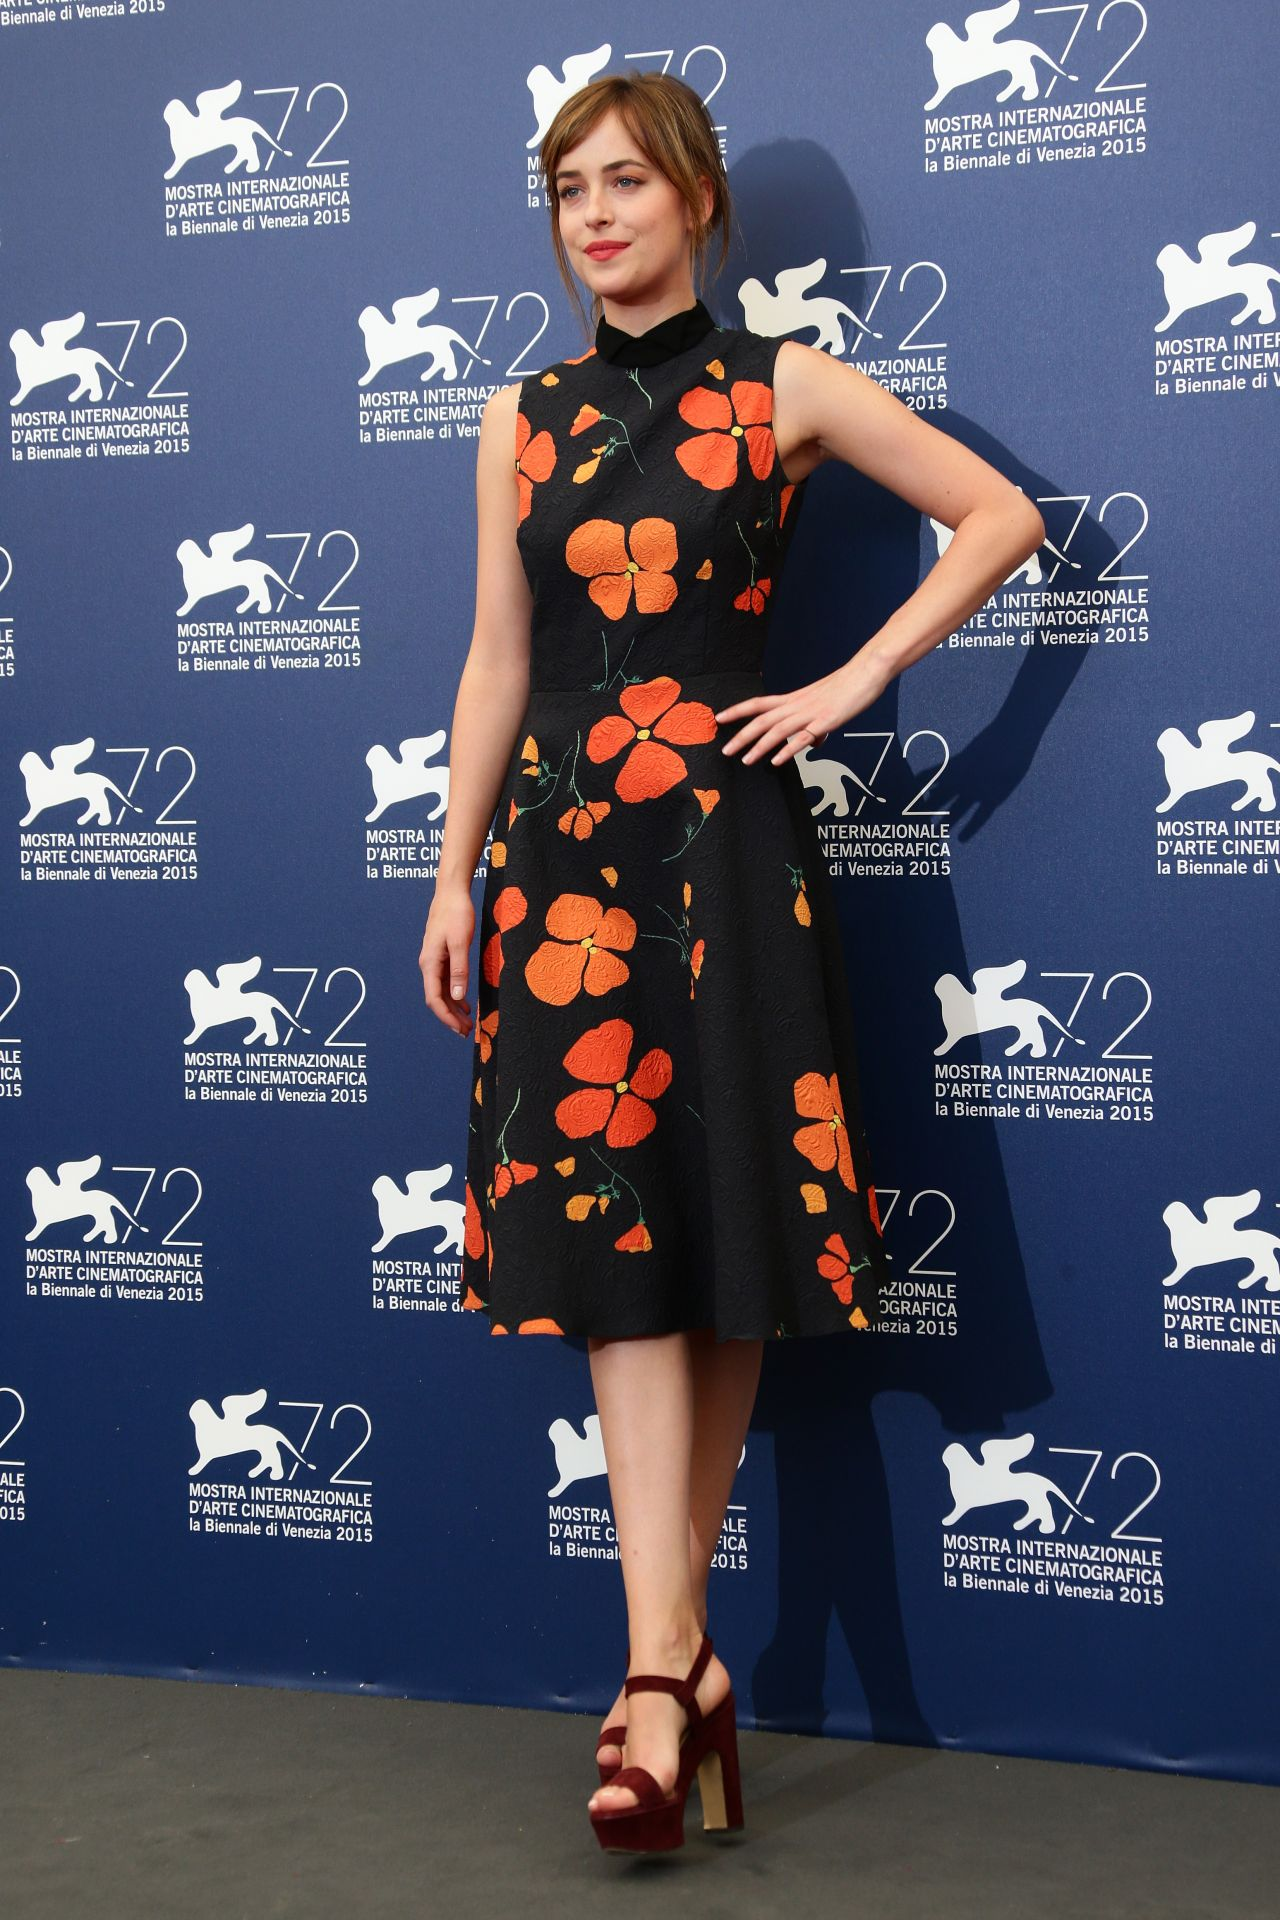 dakota-johnson-rodarte-bigger-splash-venice-film-festival-photocall